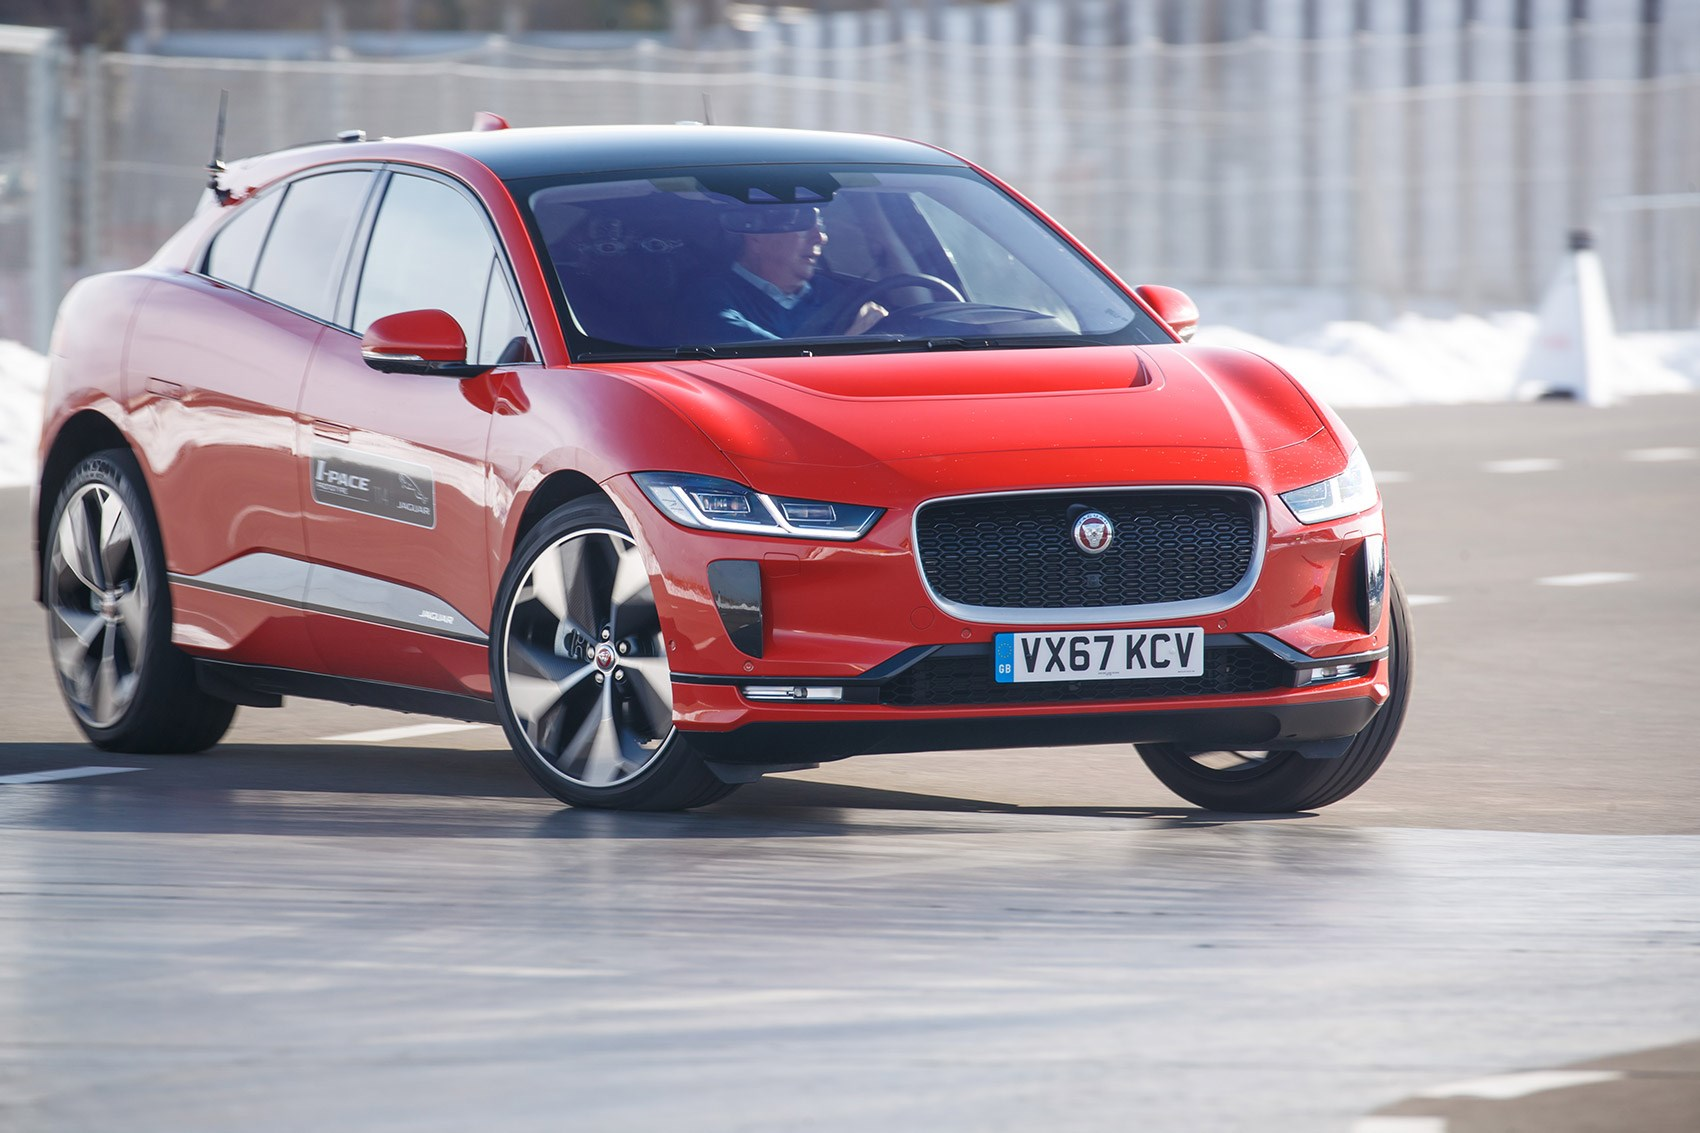 Jaguar i-Pace tested at the Geneva motor show 2018